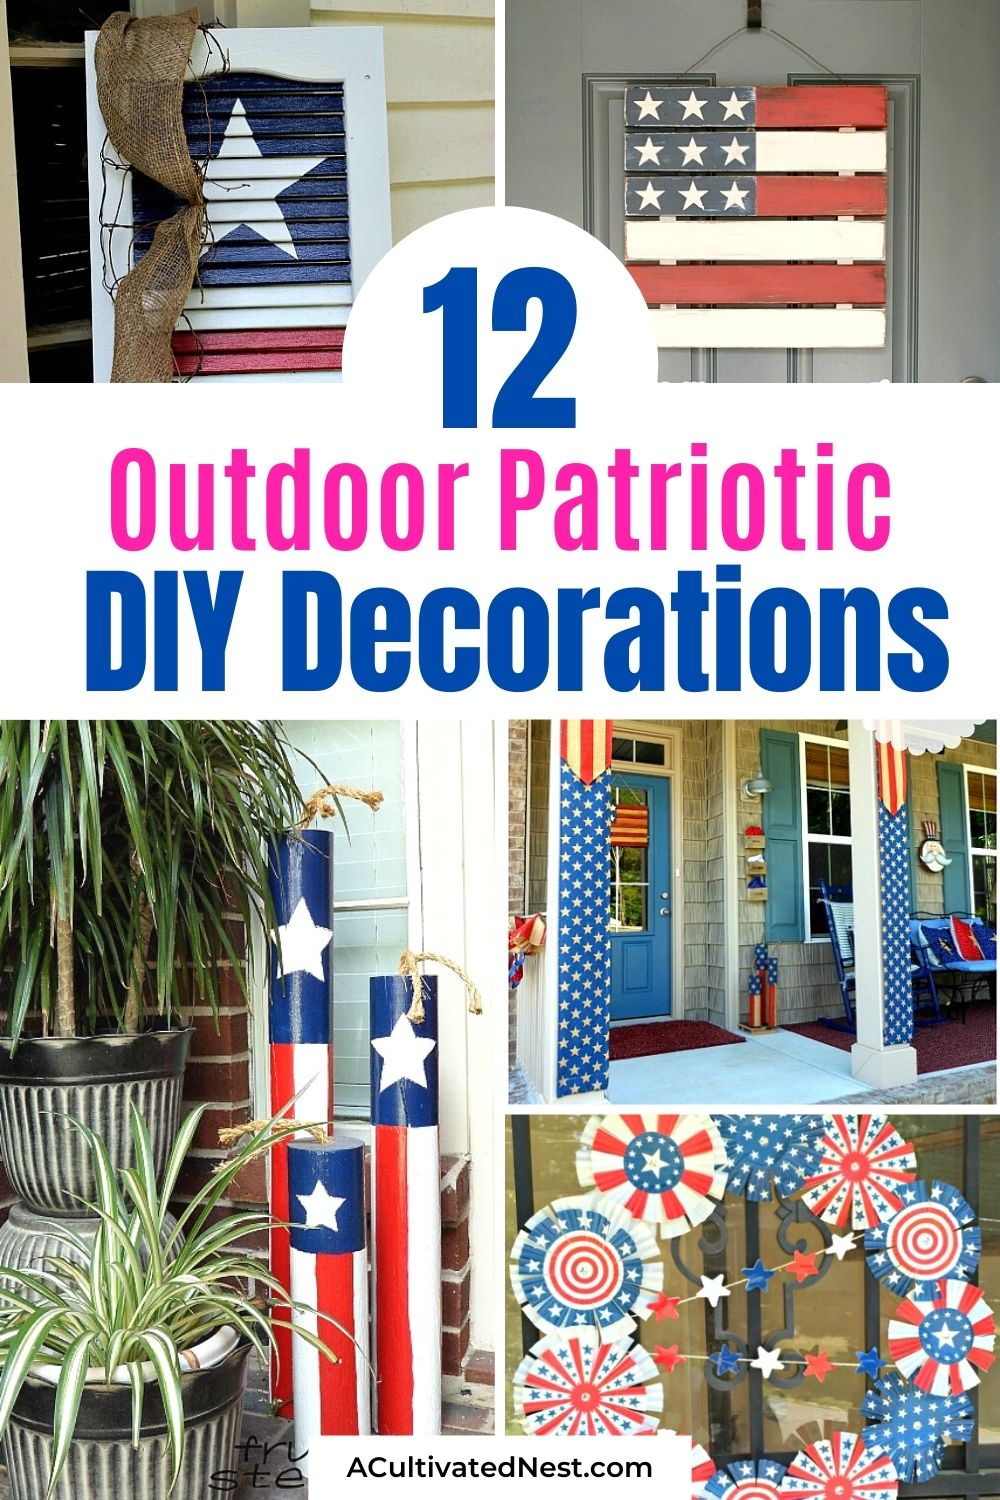 12 Cute DIY Patriotic Outdoor Decorations- Make your yard or front porch extra festive this years with these 12 DIY patriotic outdoor decorations! They're perfect for Memorial Day or the Fourth of July!   Fourth of July decorations, Memorial Day decorations, flag themed décor #FourthOfJuly #MemorialDay #diyProjects #patrioticDIY #ACultivatedNest